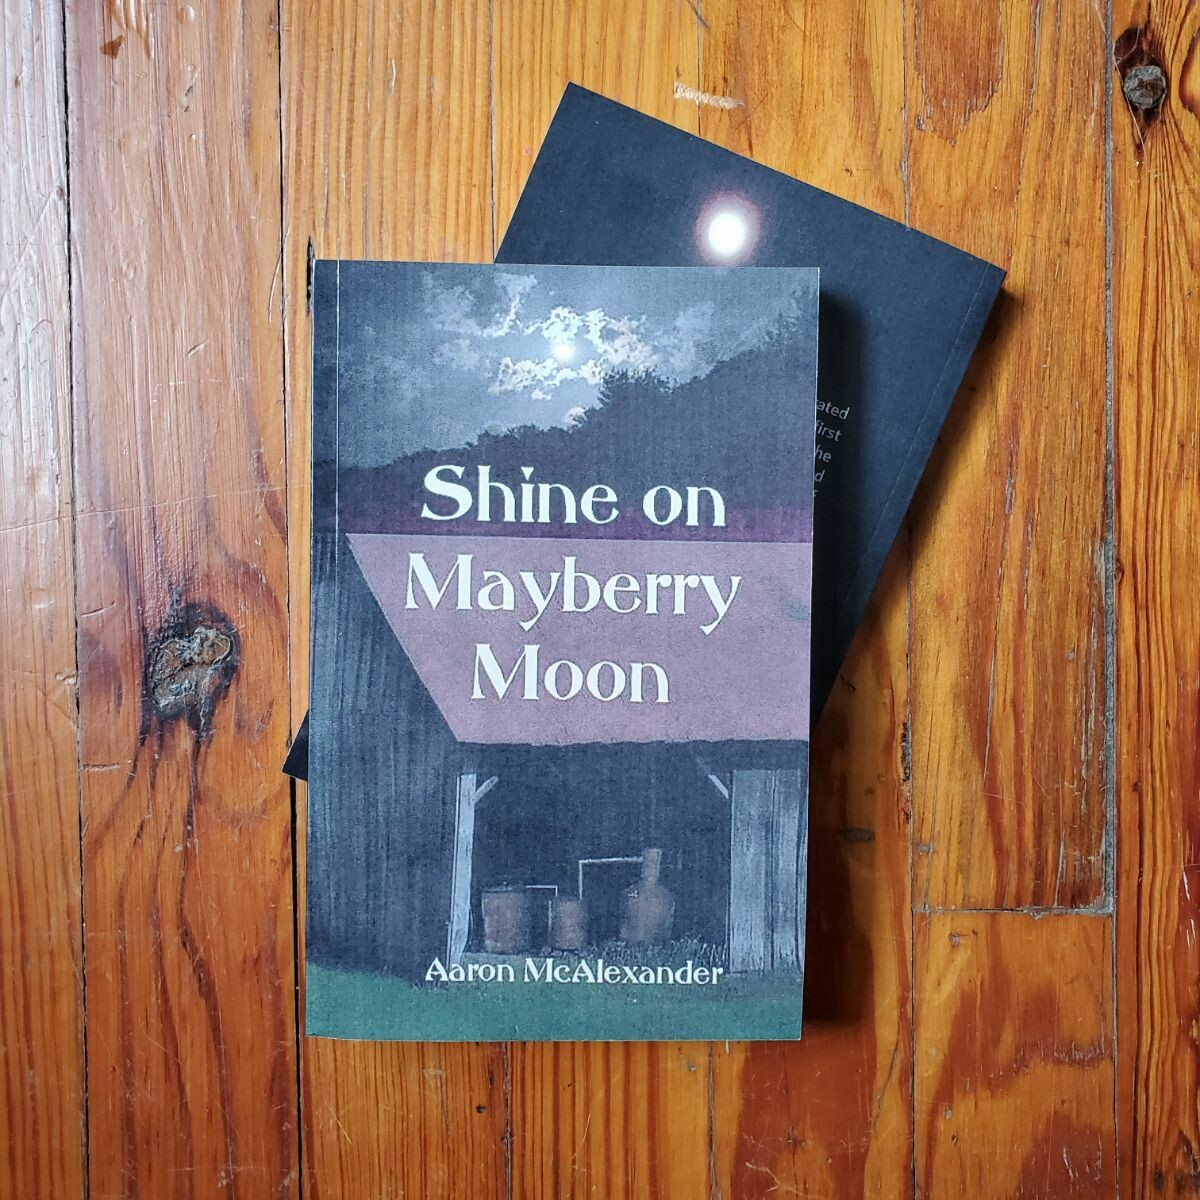 Shine on Mayberry Moon by: Aaron McAlexander